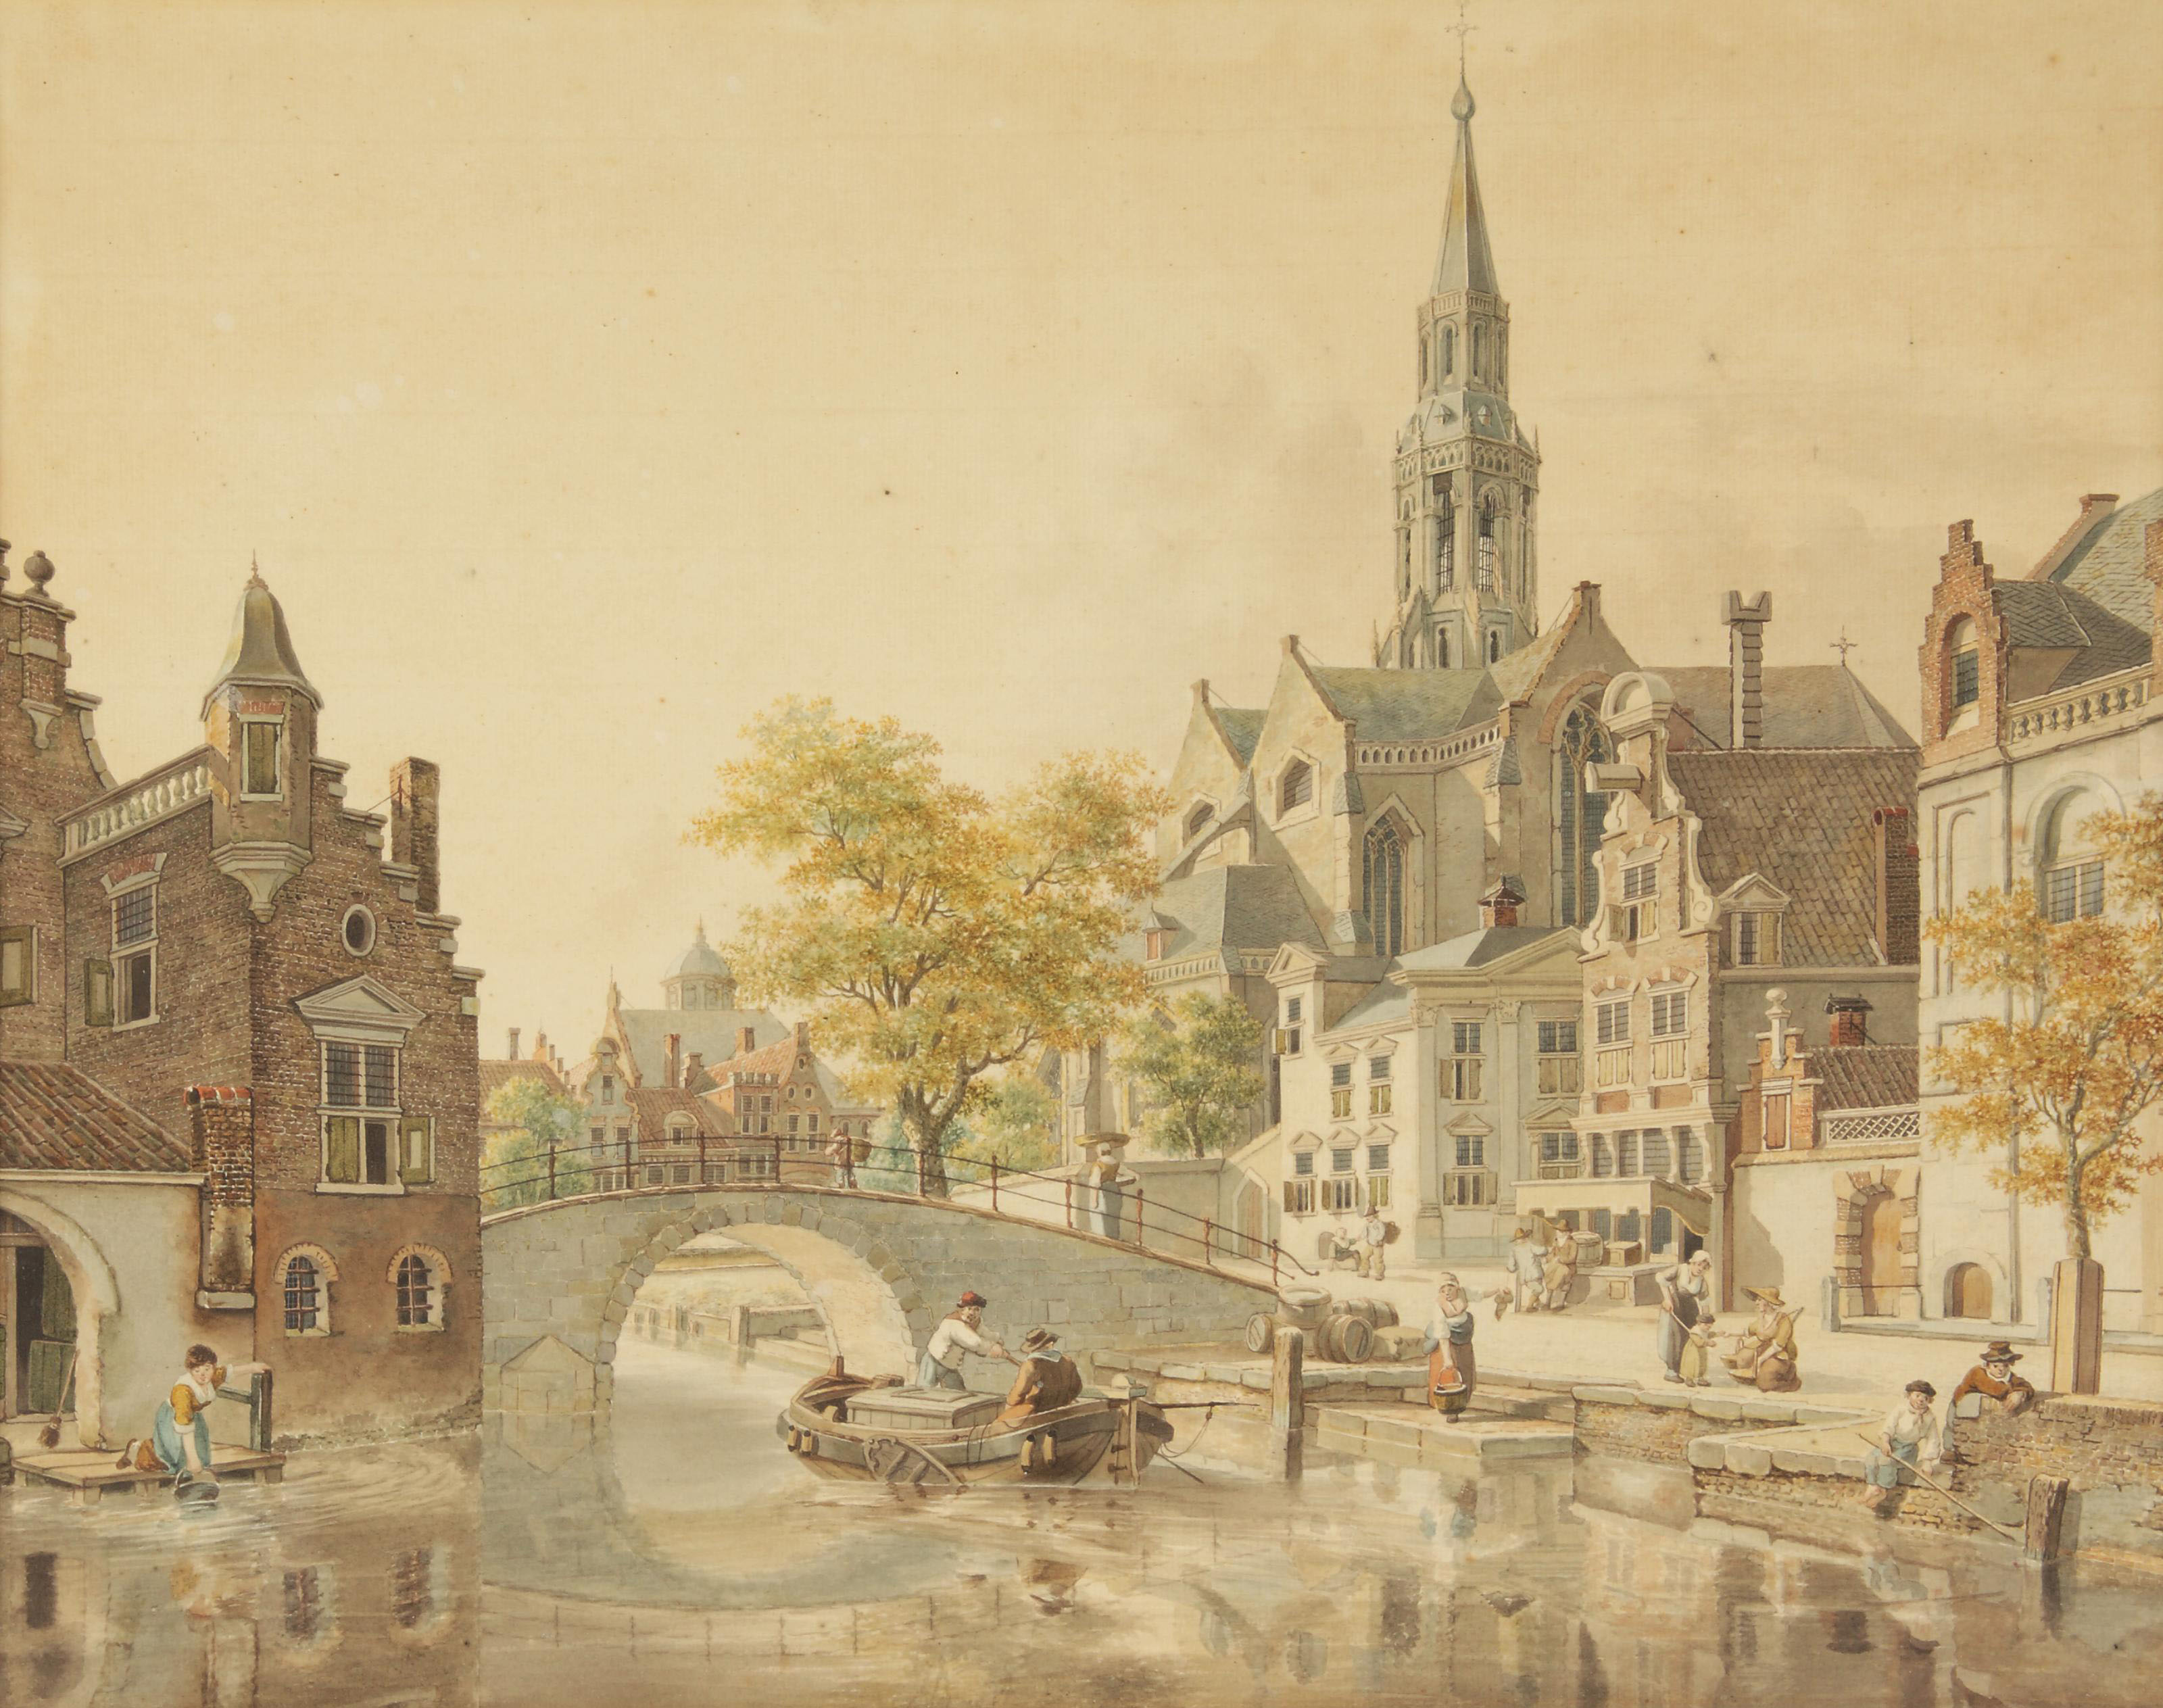 A busy day in a sunlit Dutch town